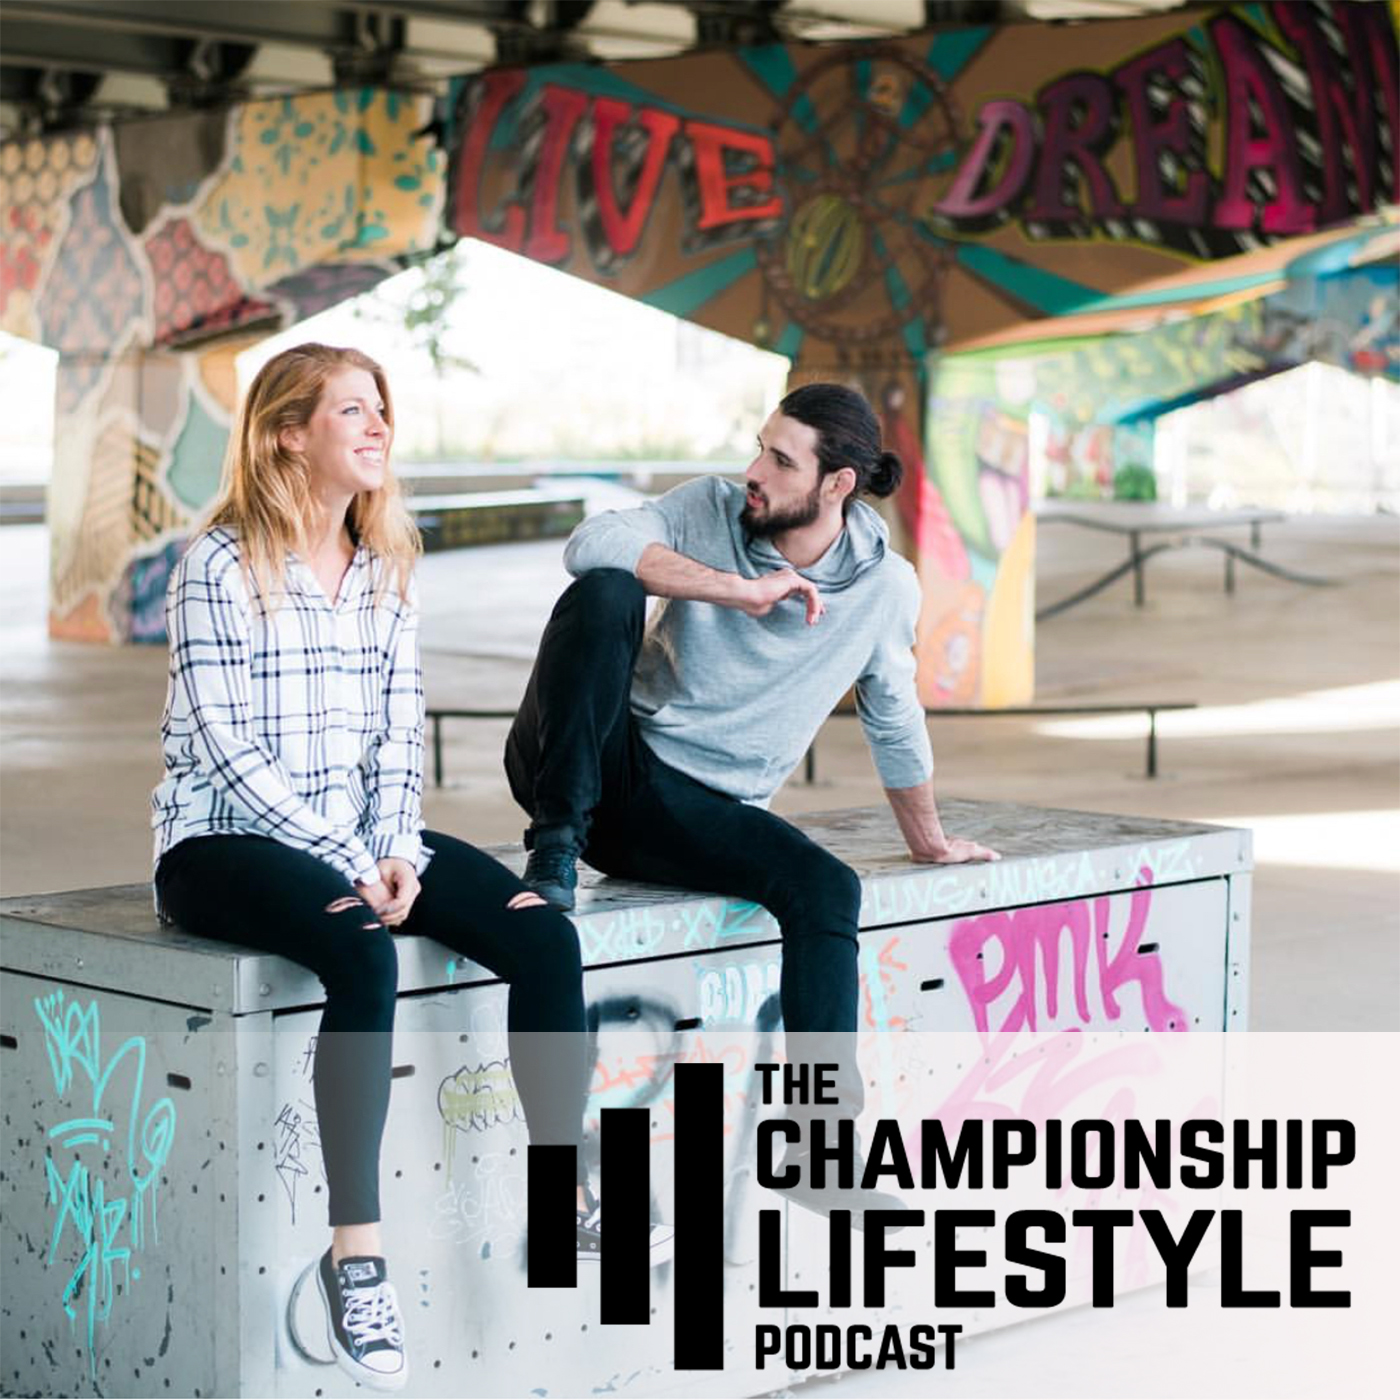 The Championship Lifestyle Podcast : Strength Training, Nutrition, and Mindset  show art